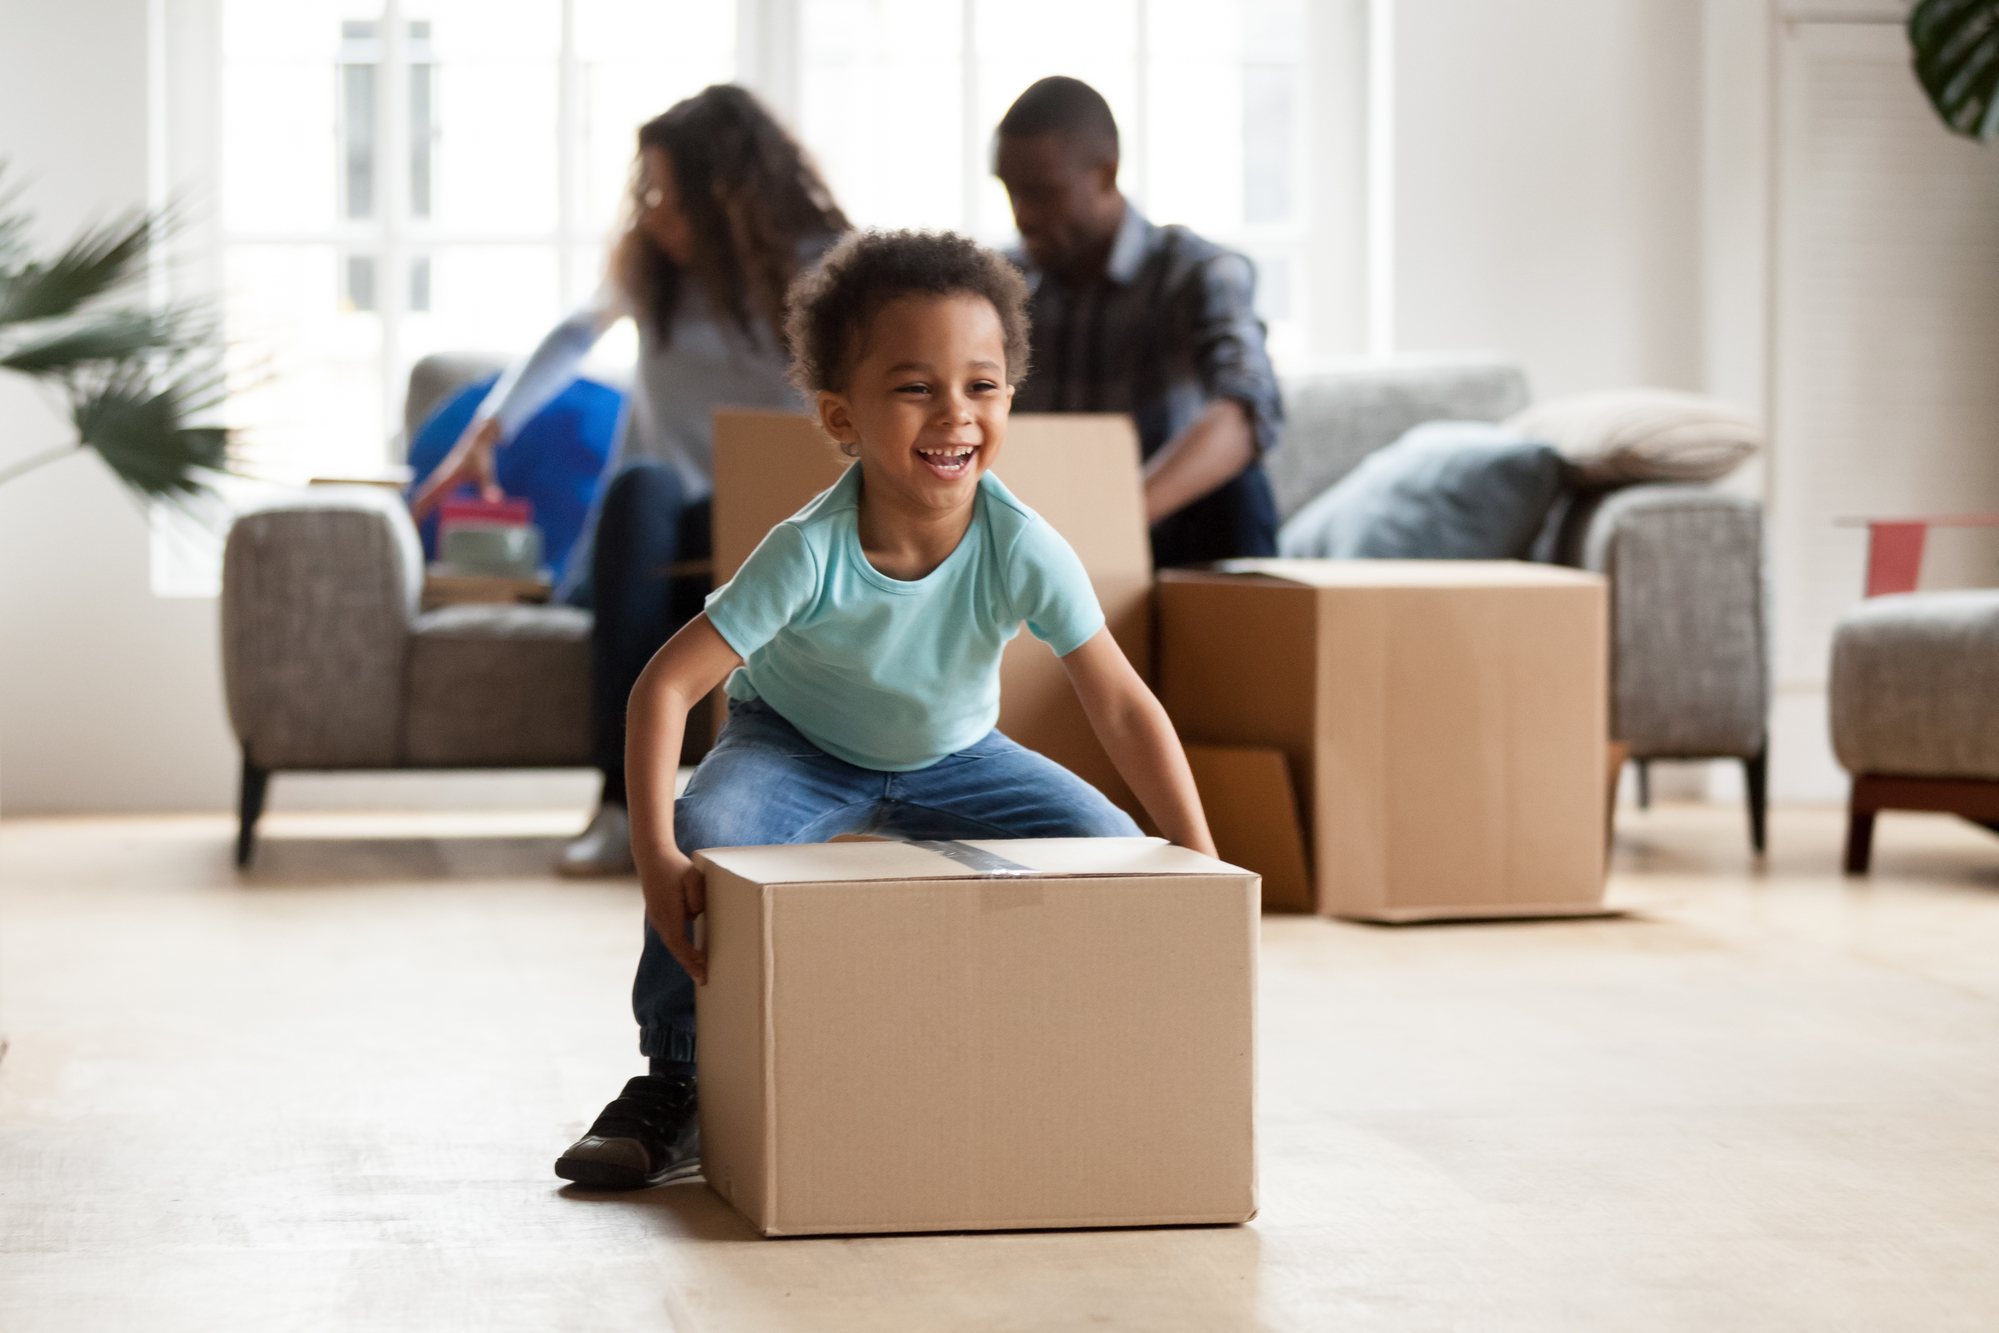 Adorable little boy playing with cardboard box at home